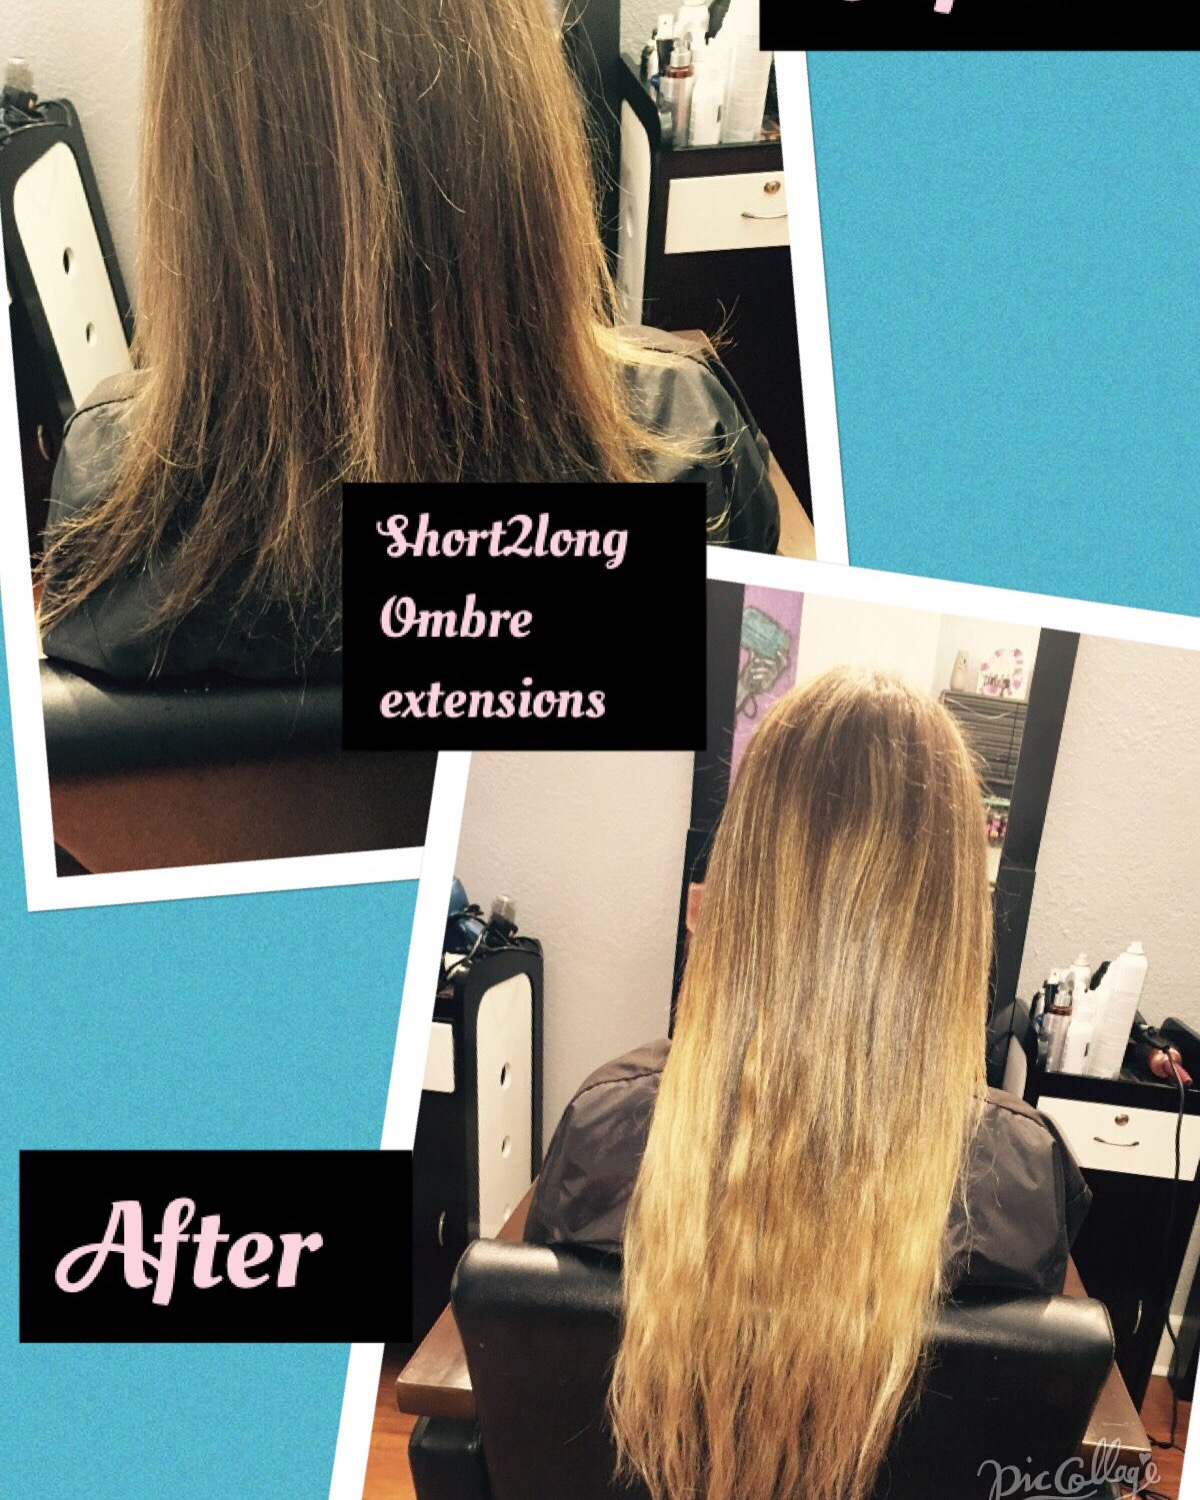 Hair extensions specialist hair by zaklina beauitful natural fine wave to as well so she can wash and go love adding hair extensionsespecially if you have short or thin hair its life changing pmusecretfo Choice Image